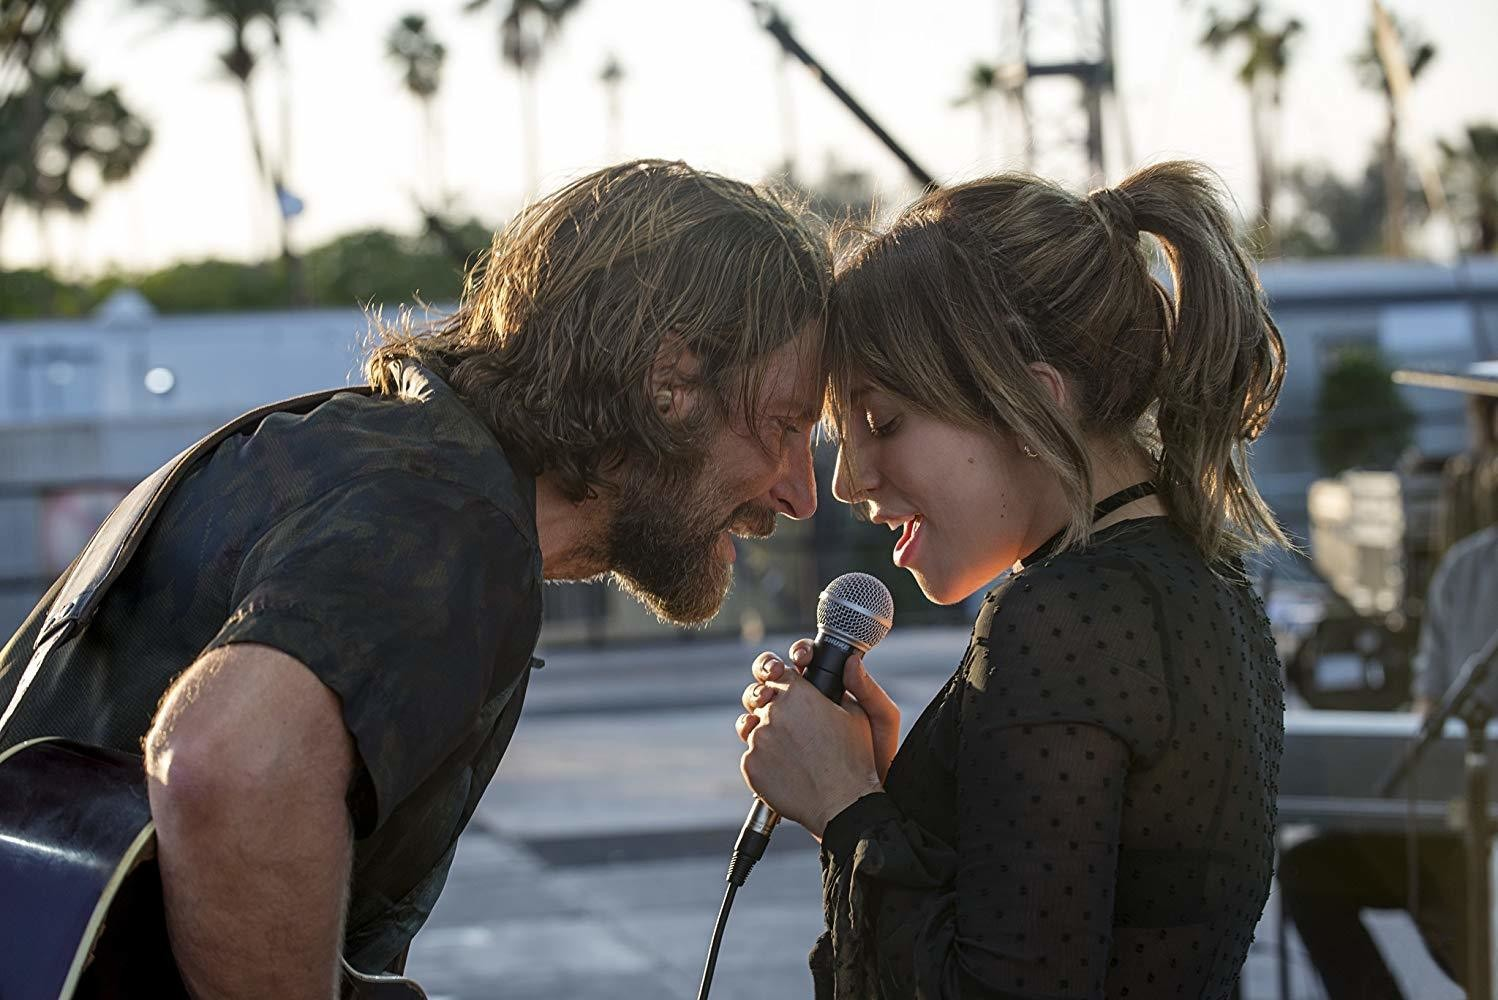 Everything To Know About 'A Star Is Born' Before It Hits Theaters